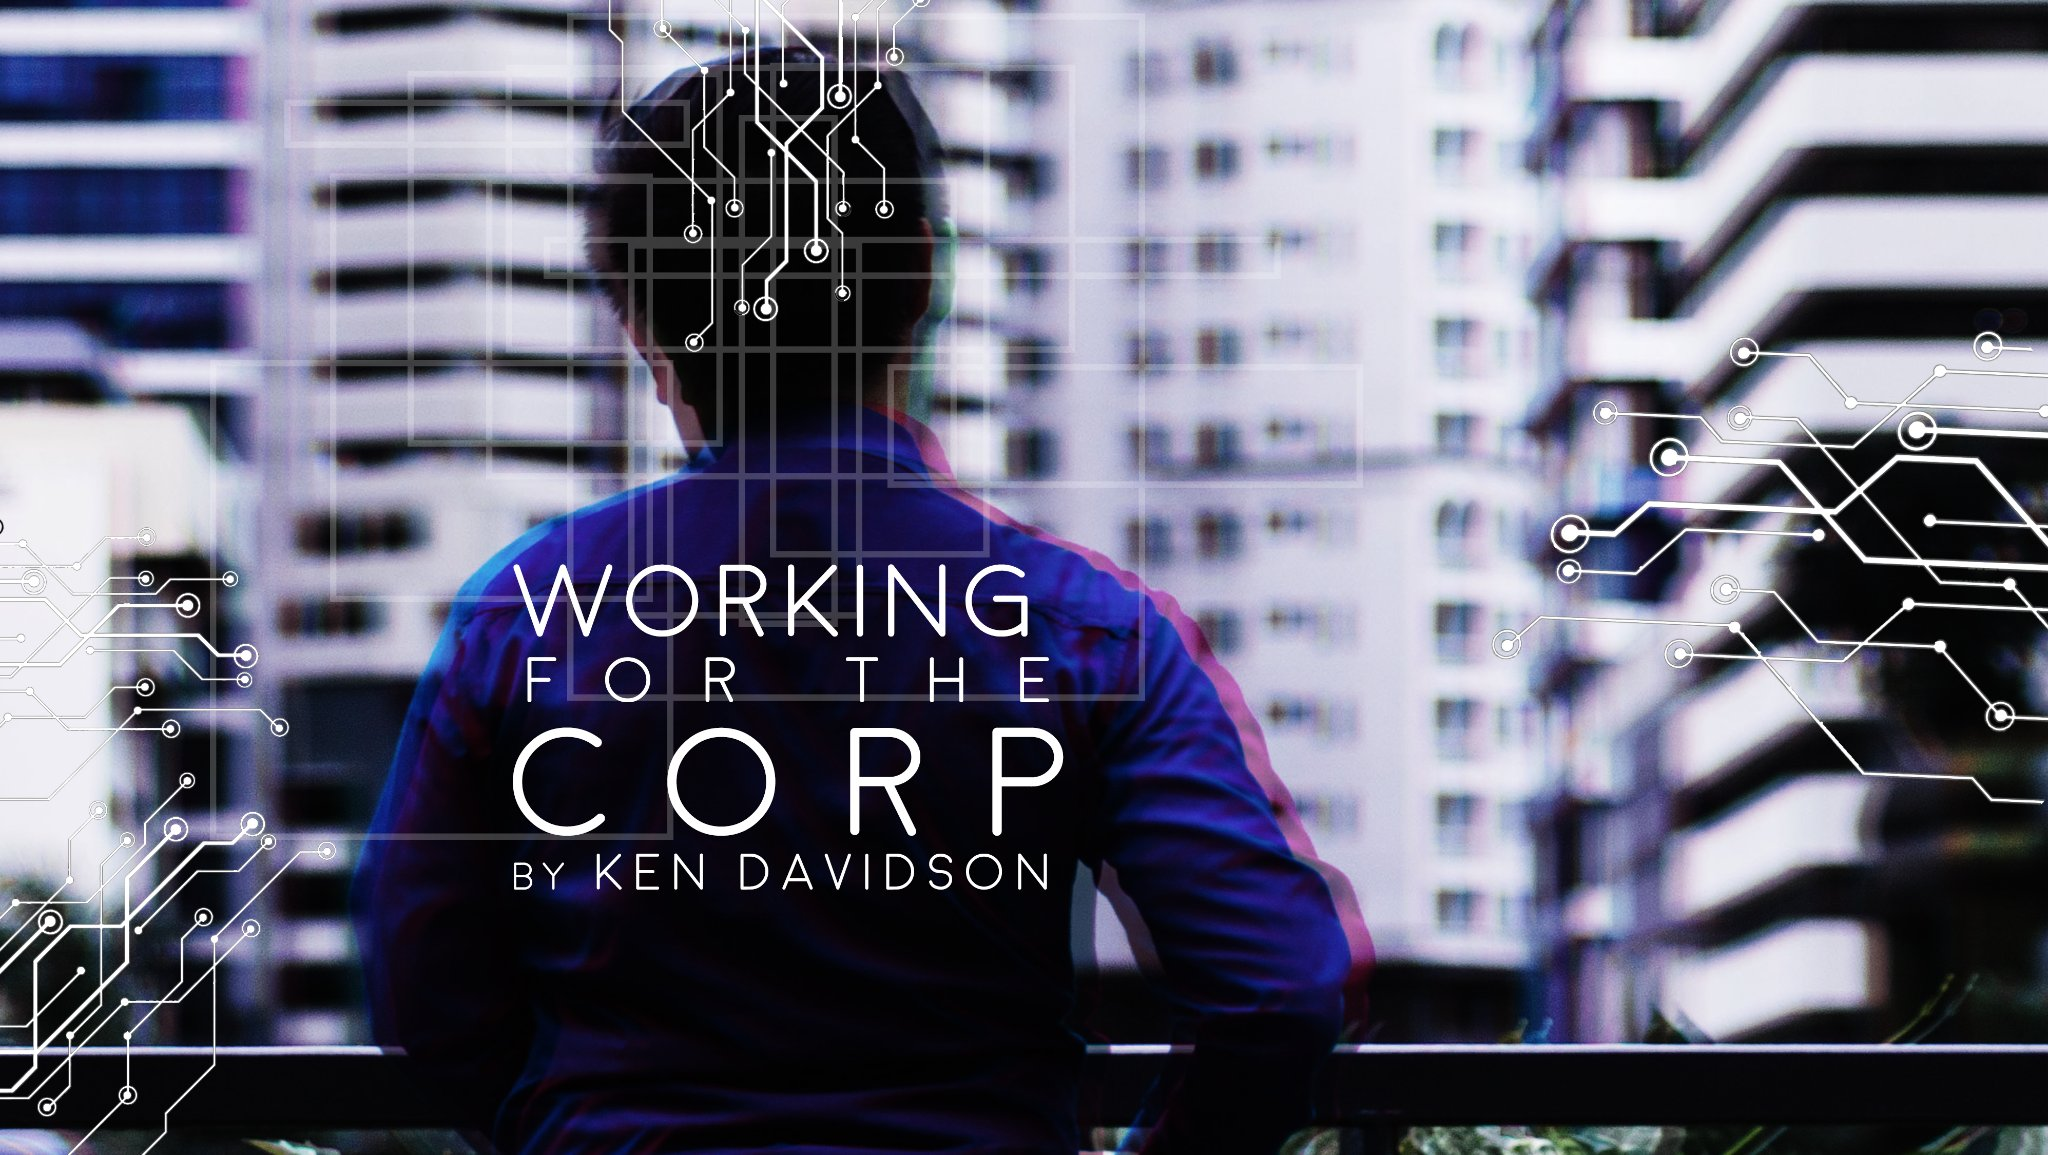 Working For The Corp